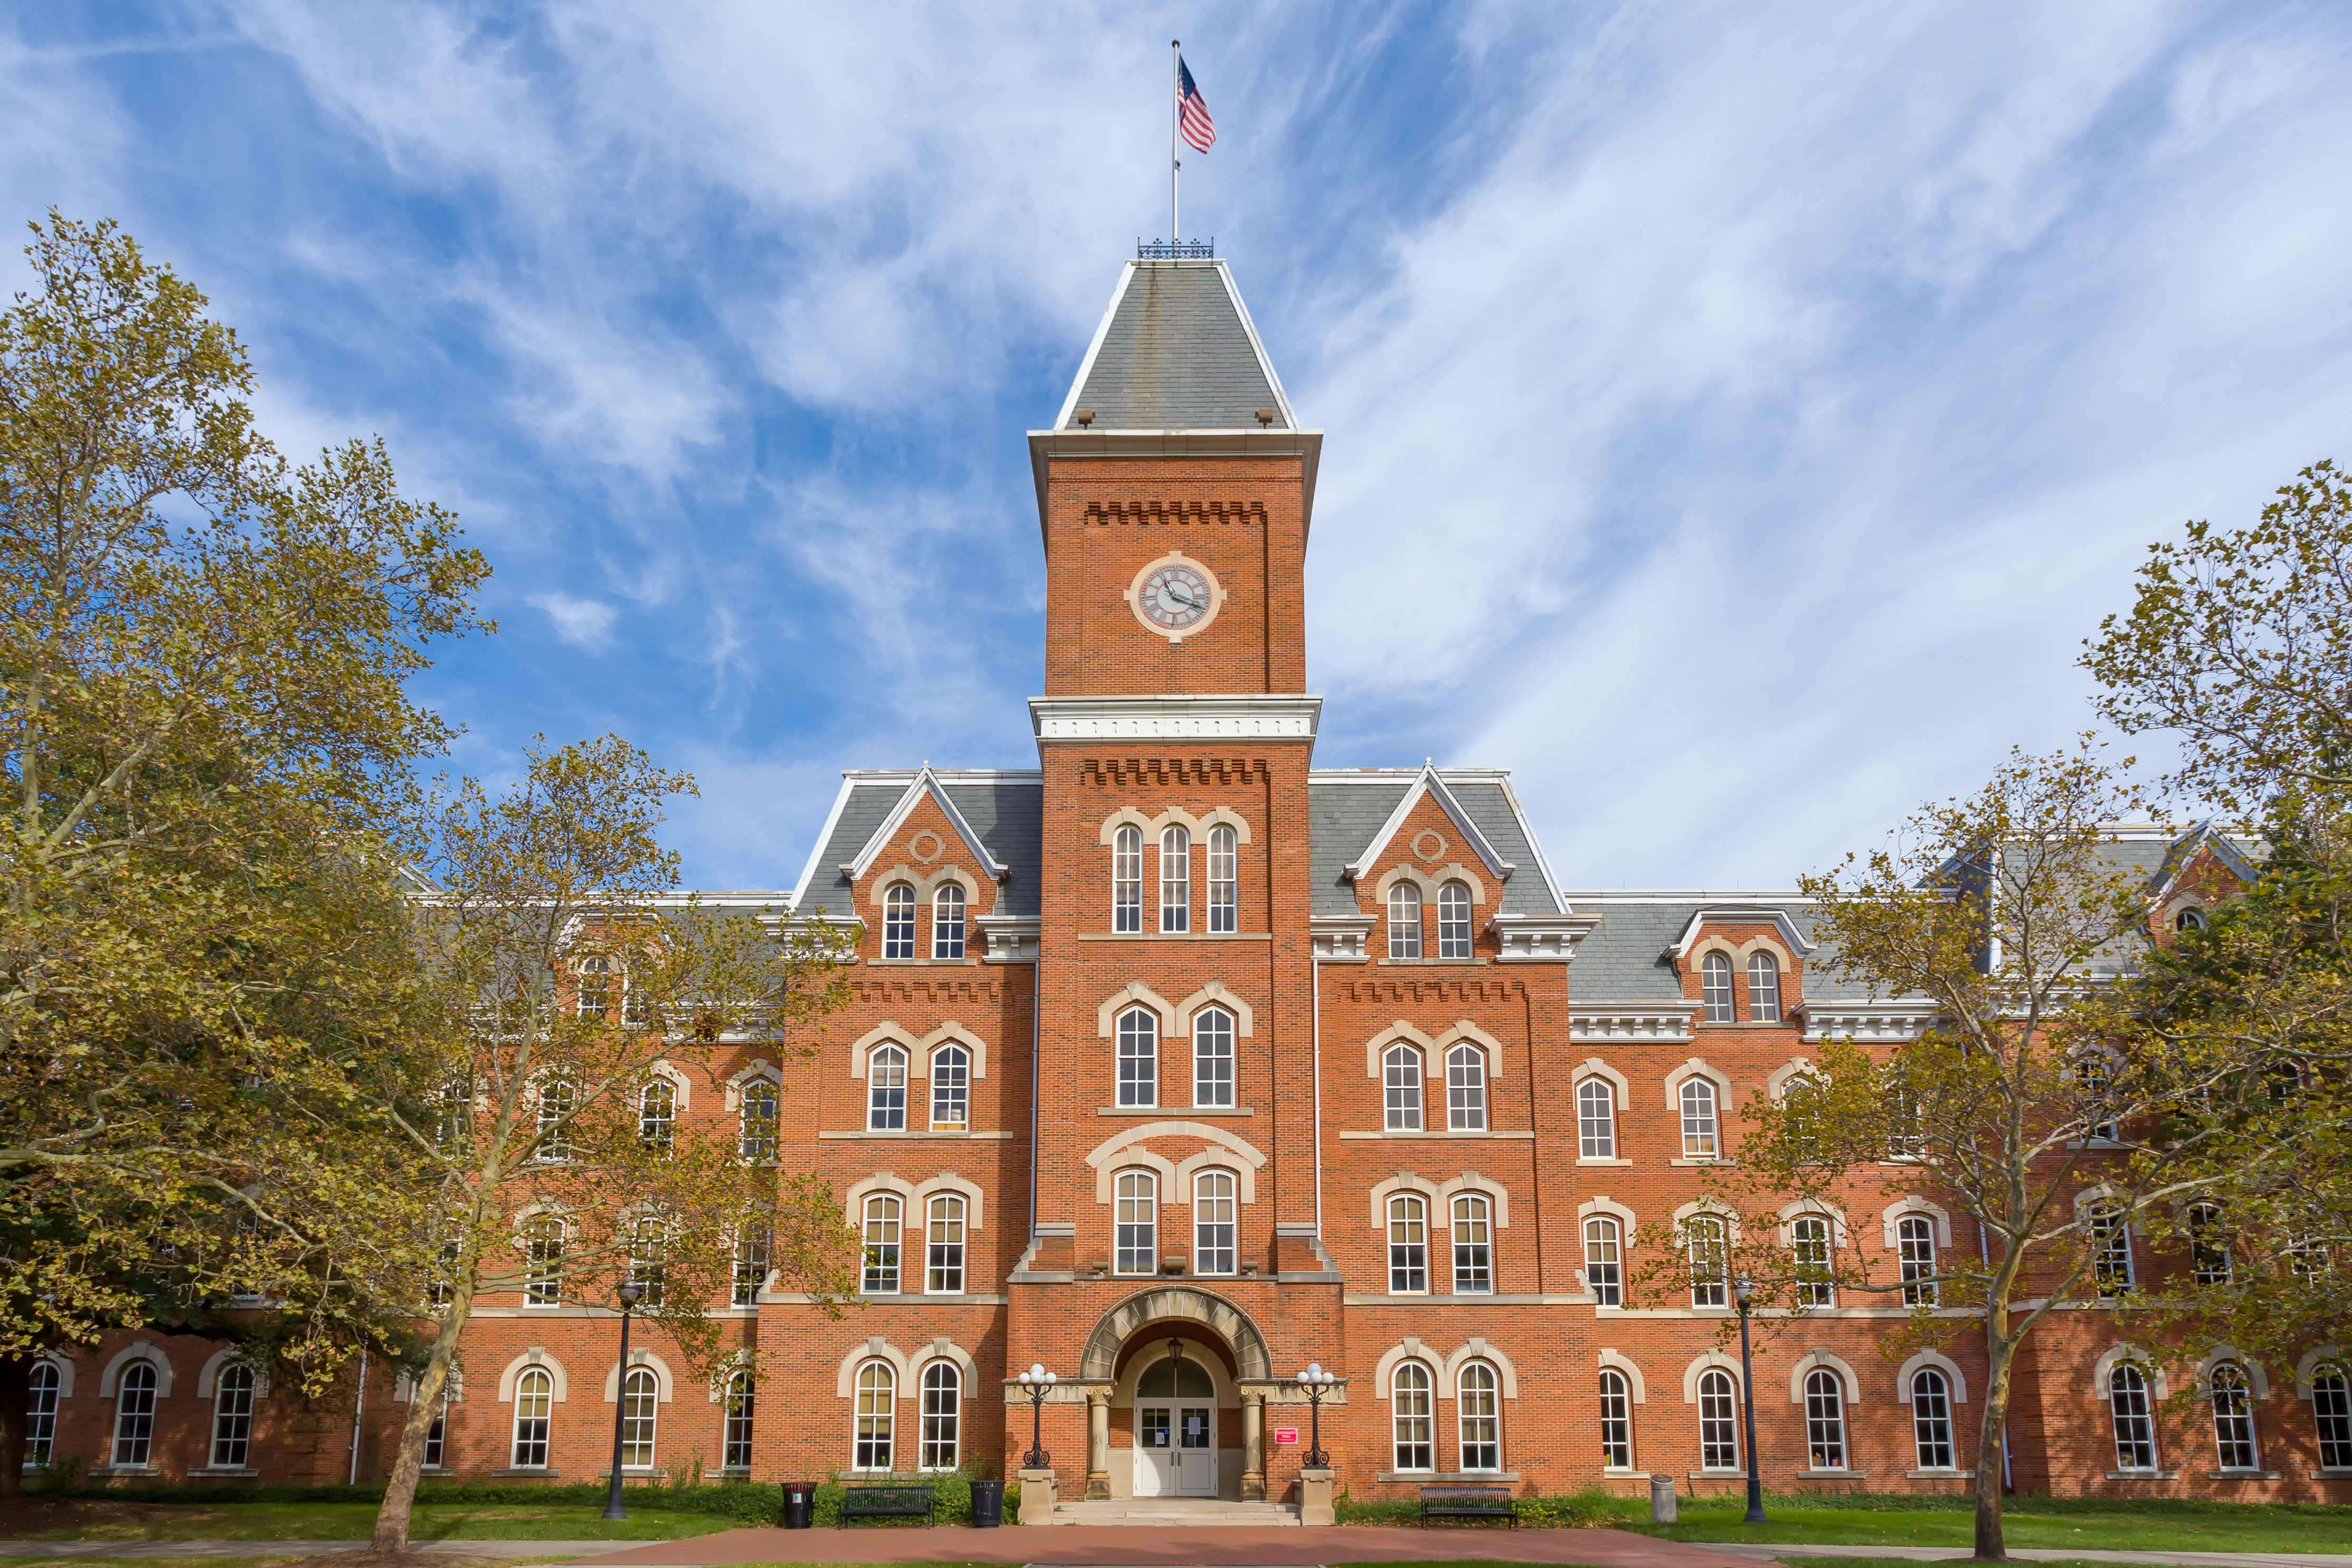 University Hall on the Ohio State University campus is pictured in the fall. Shutterstock image via Ken Wolter